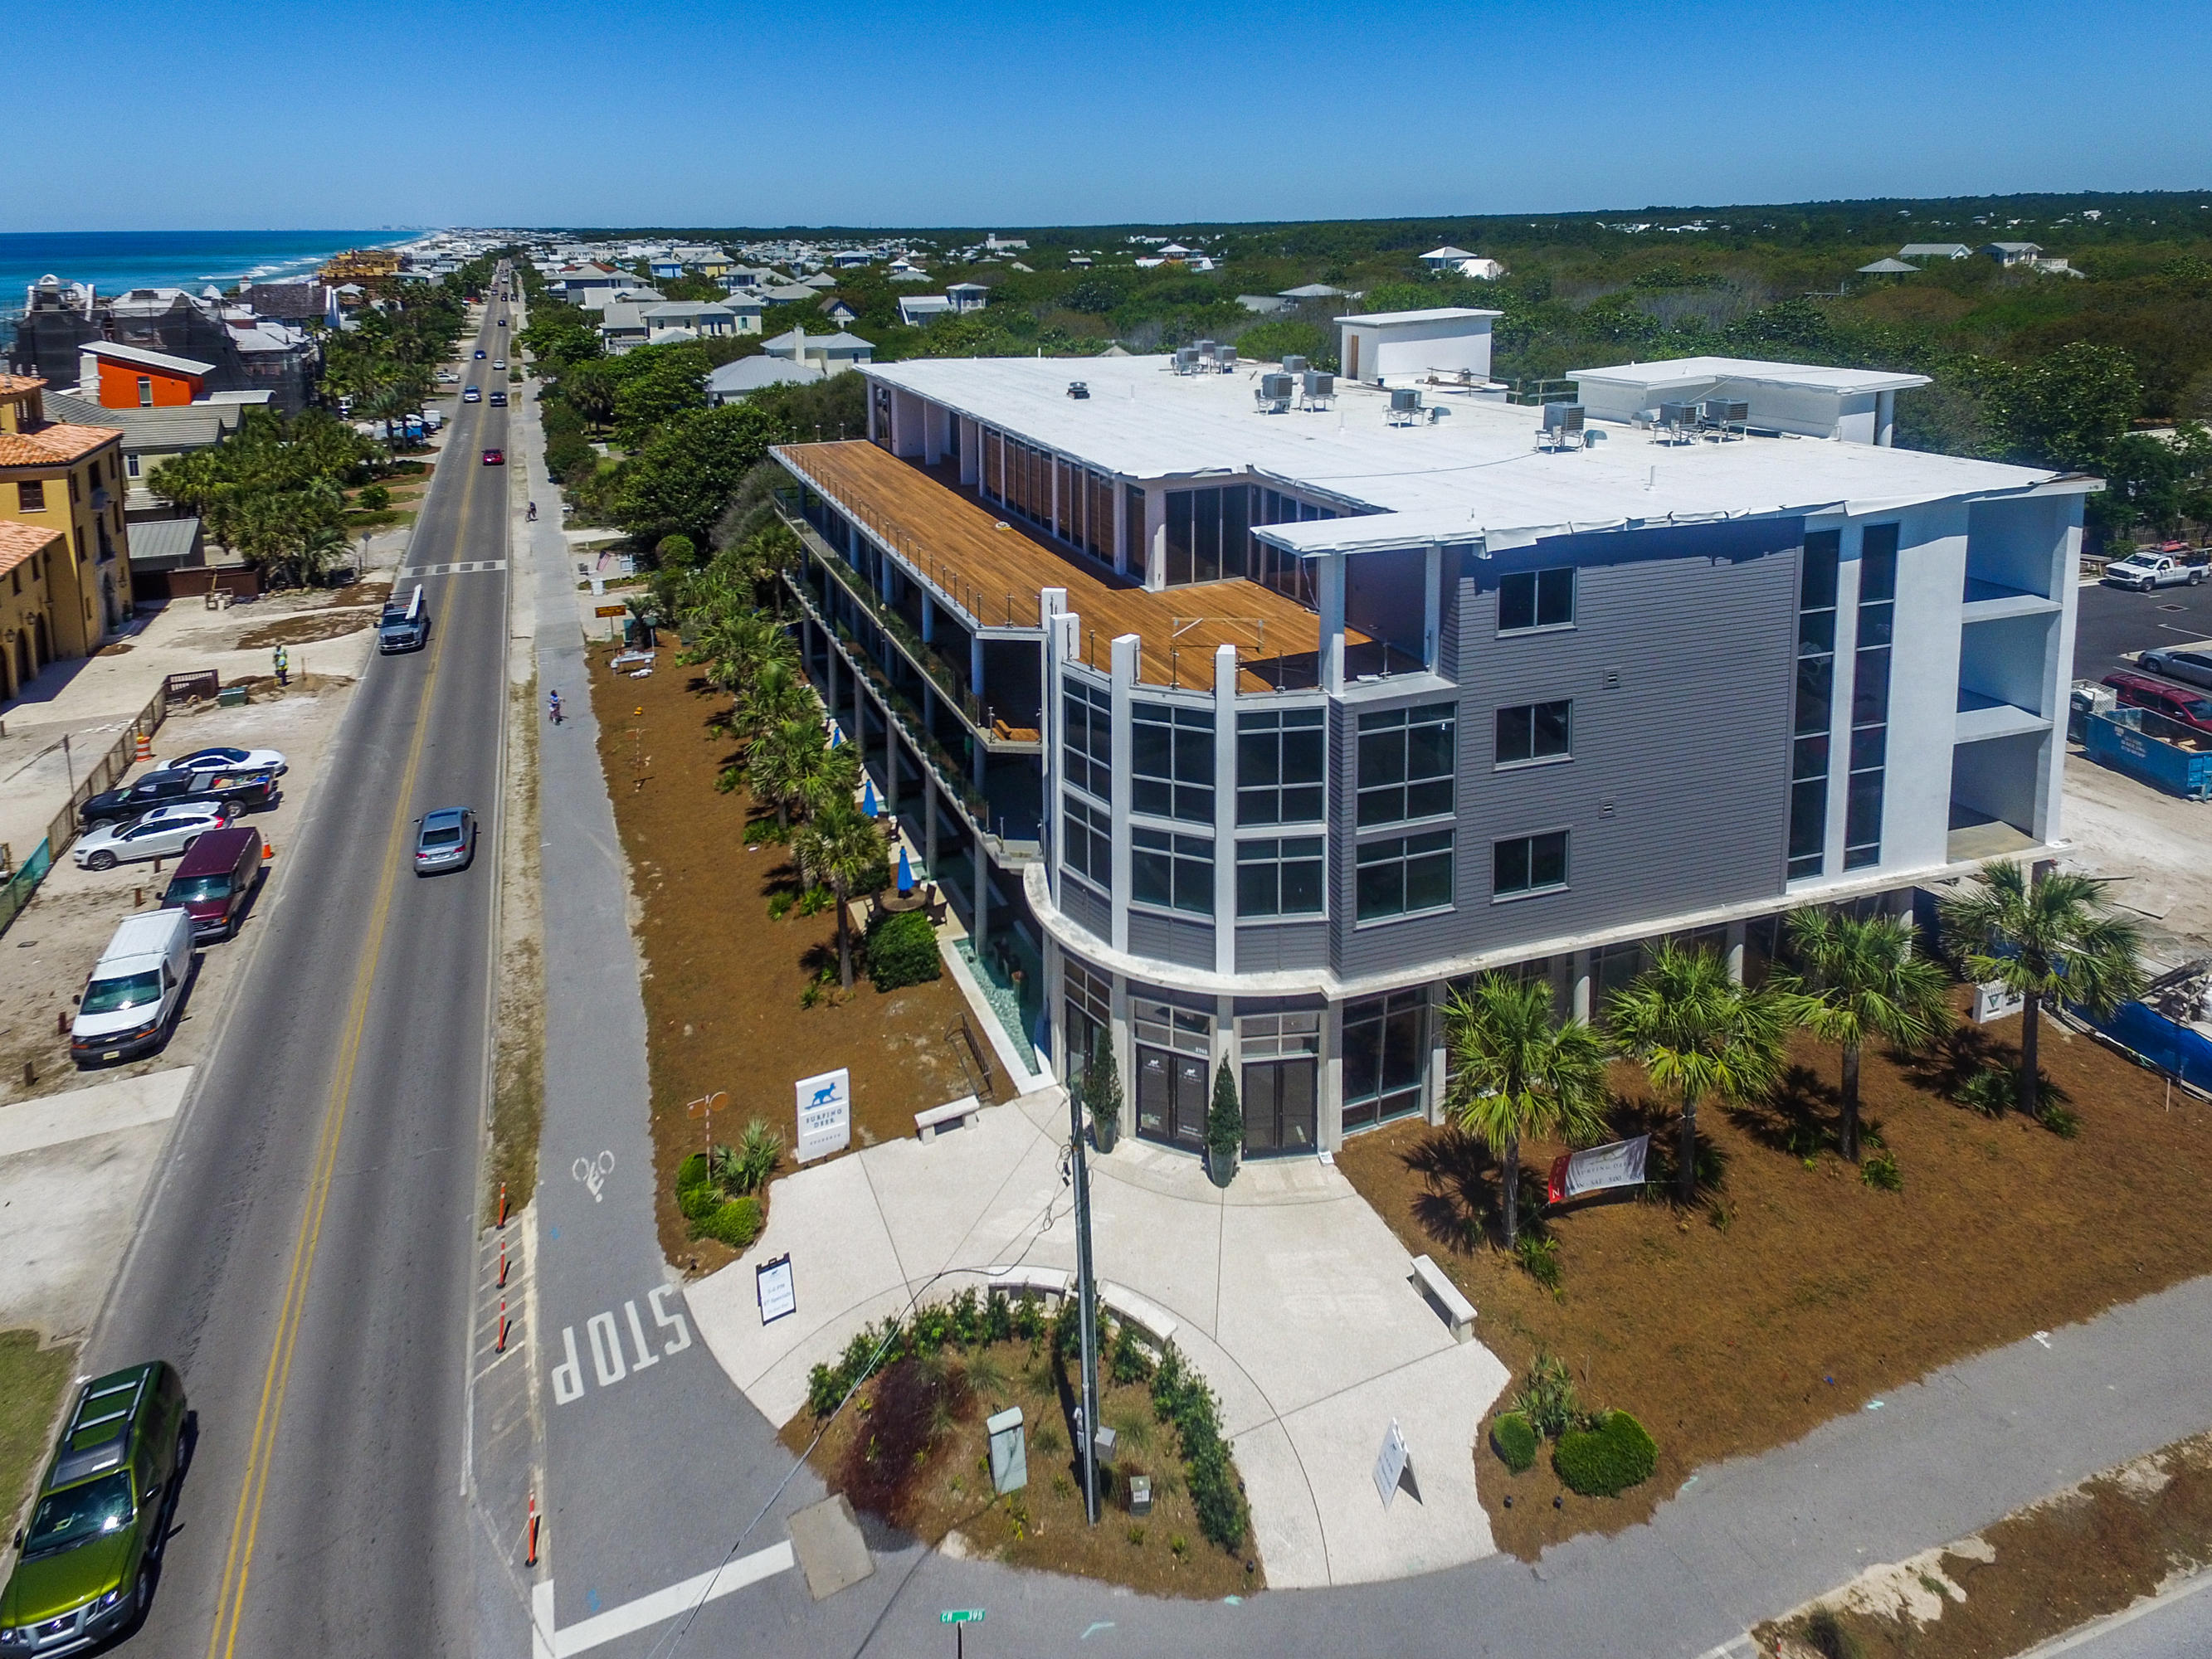 2743 Scenic Highway 30A,Santa Rosa Beach,Florida 32459,3 Bedrooms Bedrooms,3 BathroomsBathrooms,Condominium,Scenic Highway 30A,20131126143817002353000000